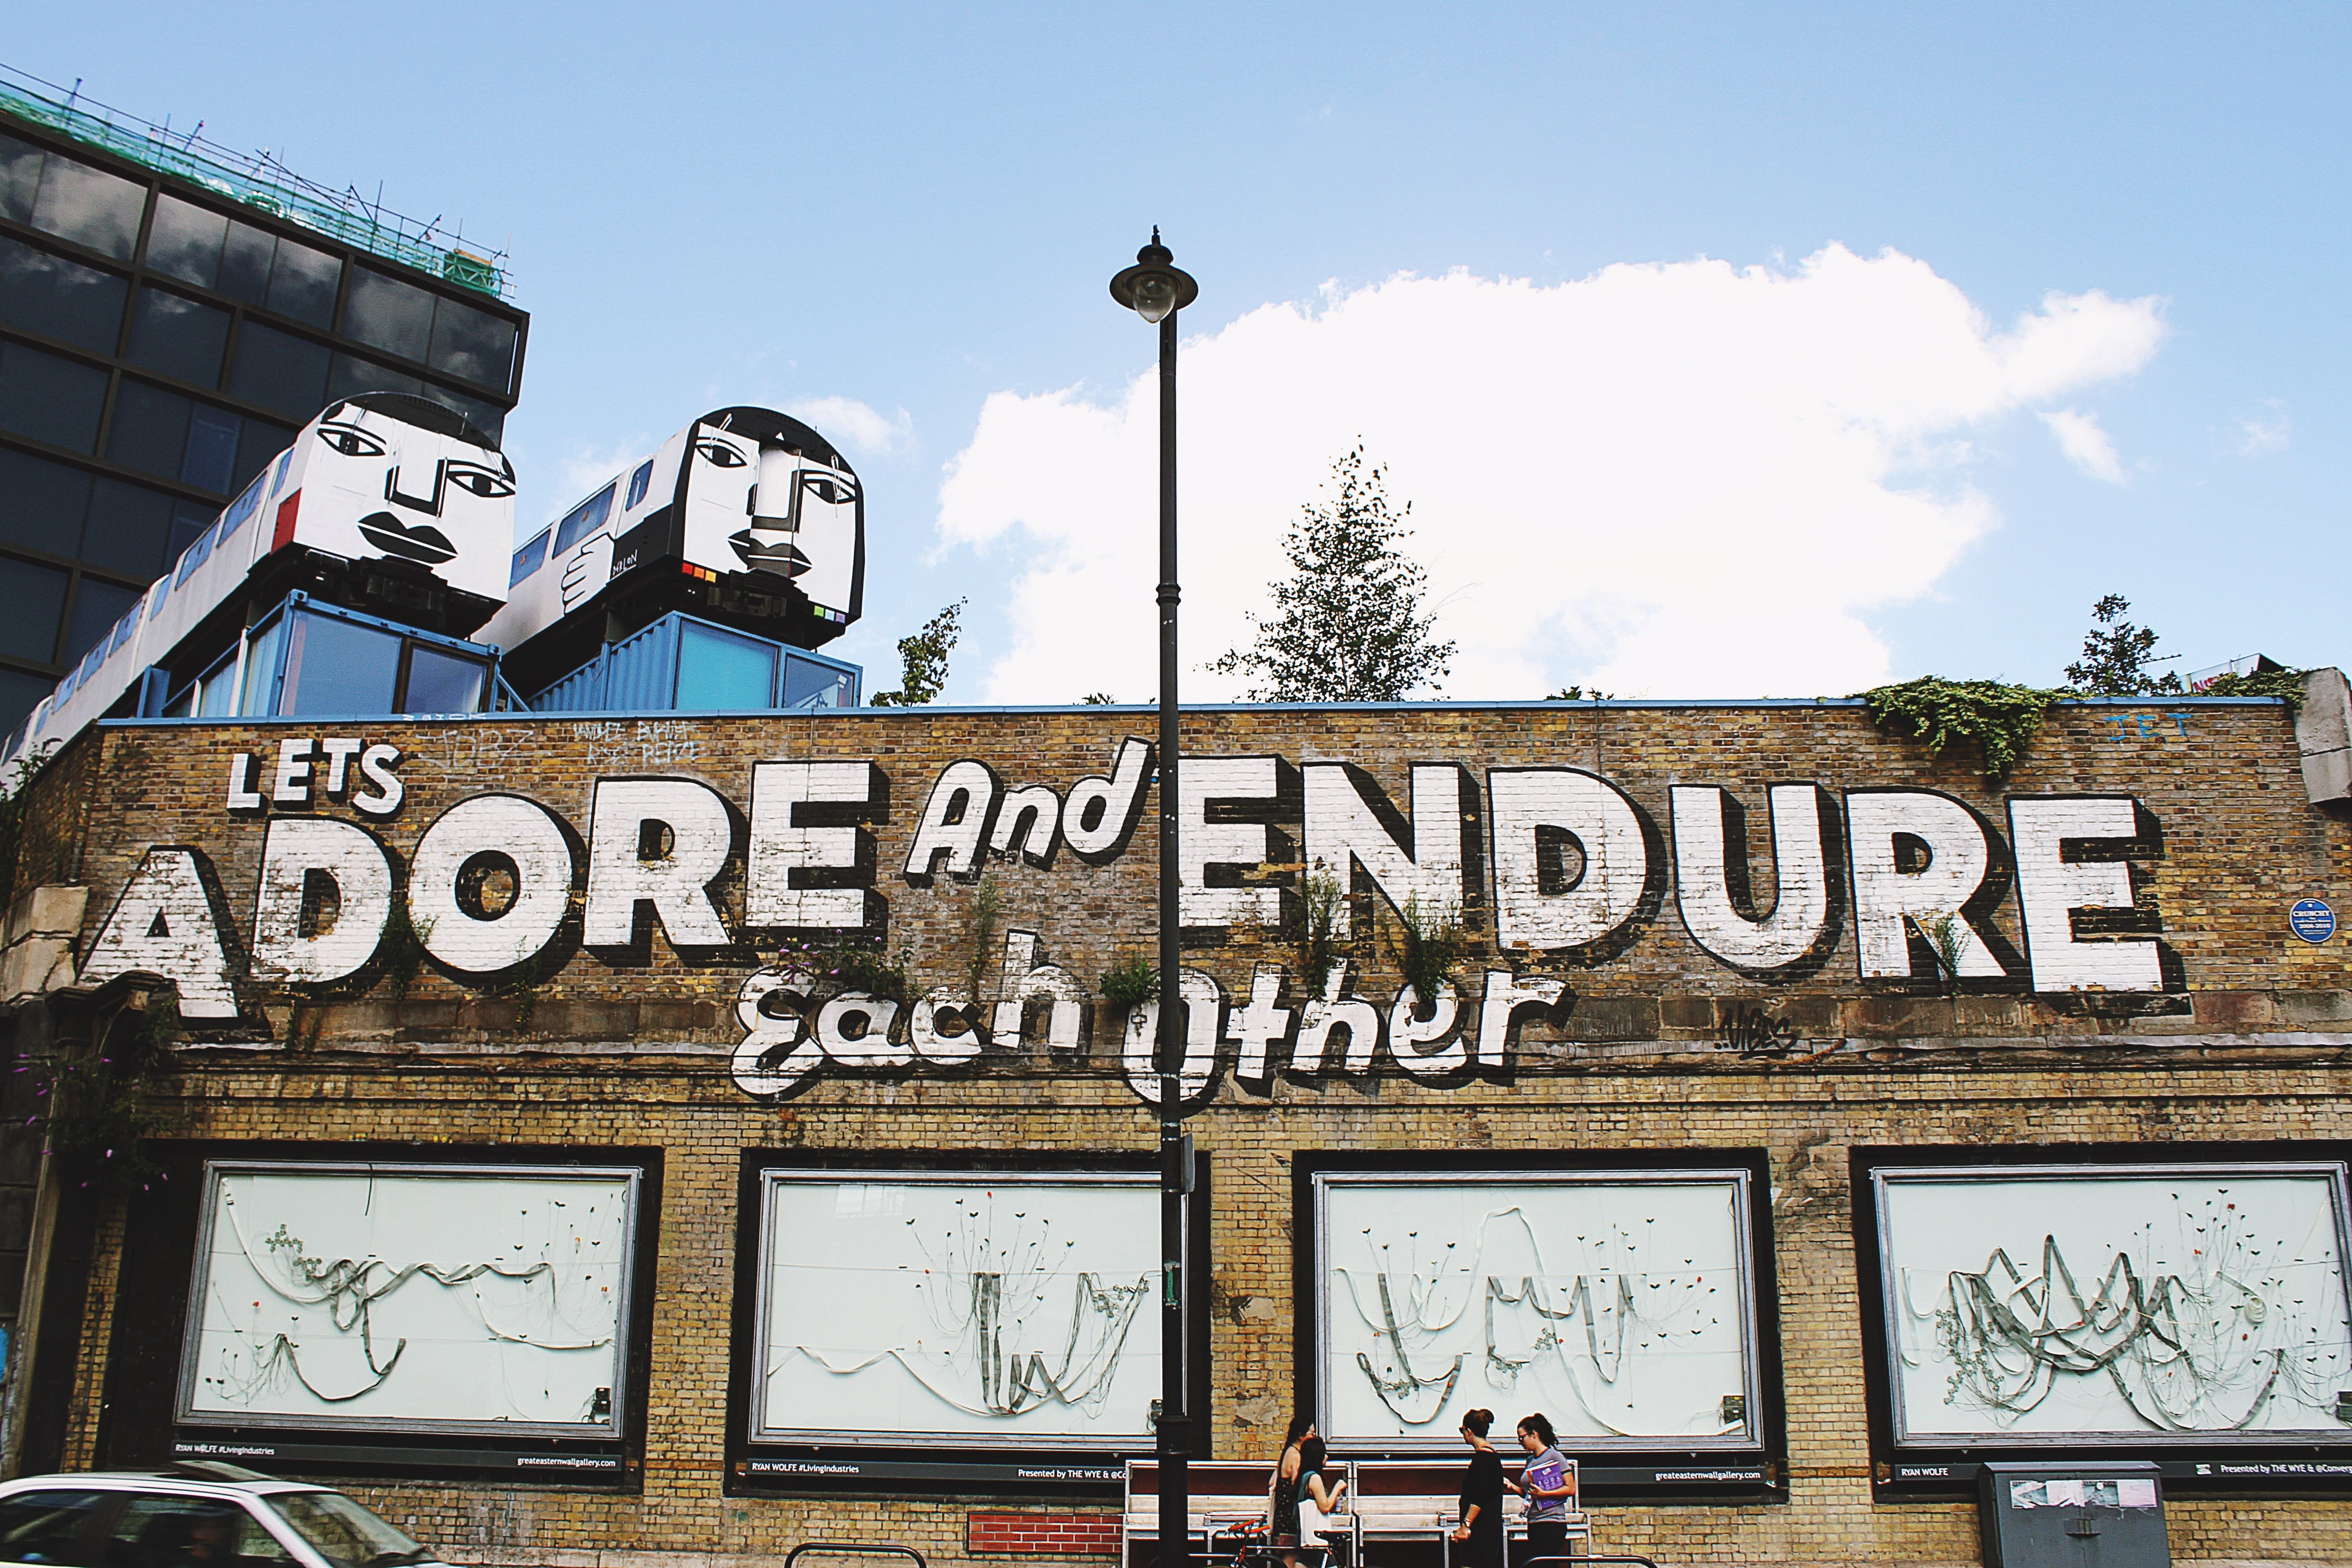 Street art in Shoreditch, painted on a brown brick wall, which reads 'Let's adore and endure each other'